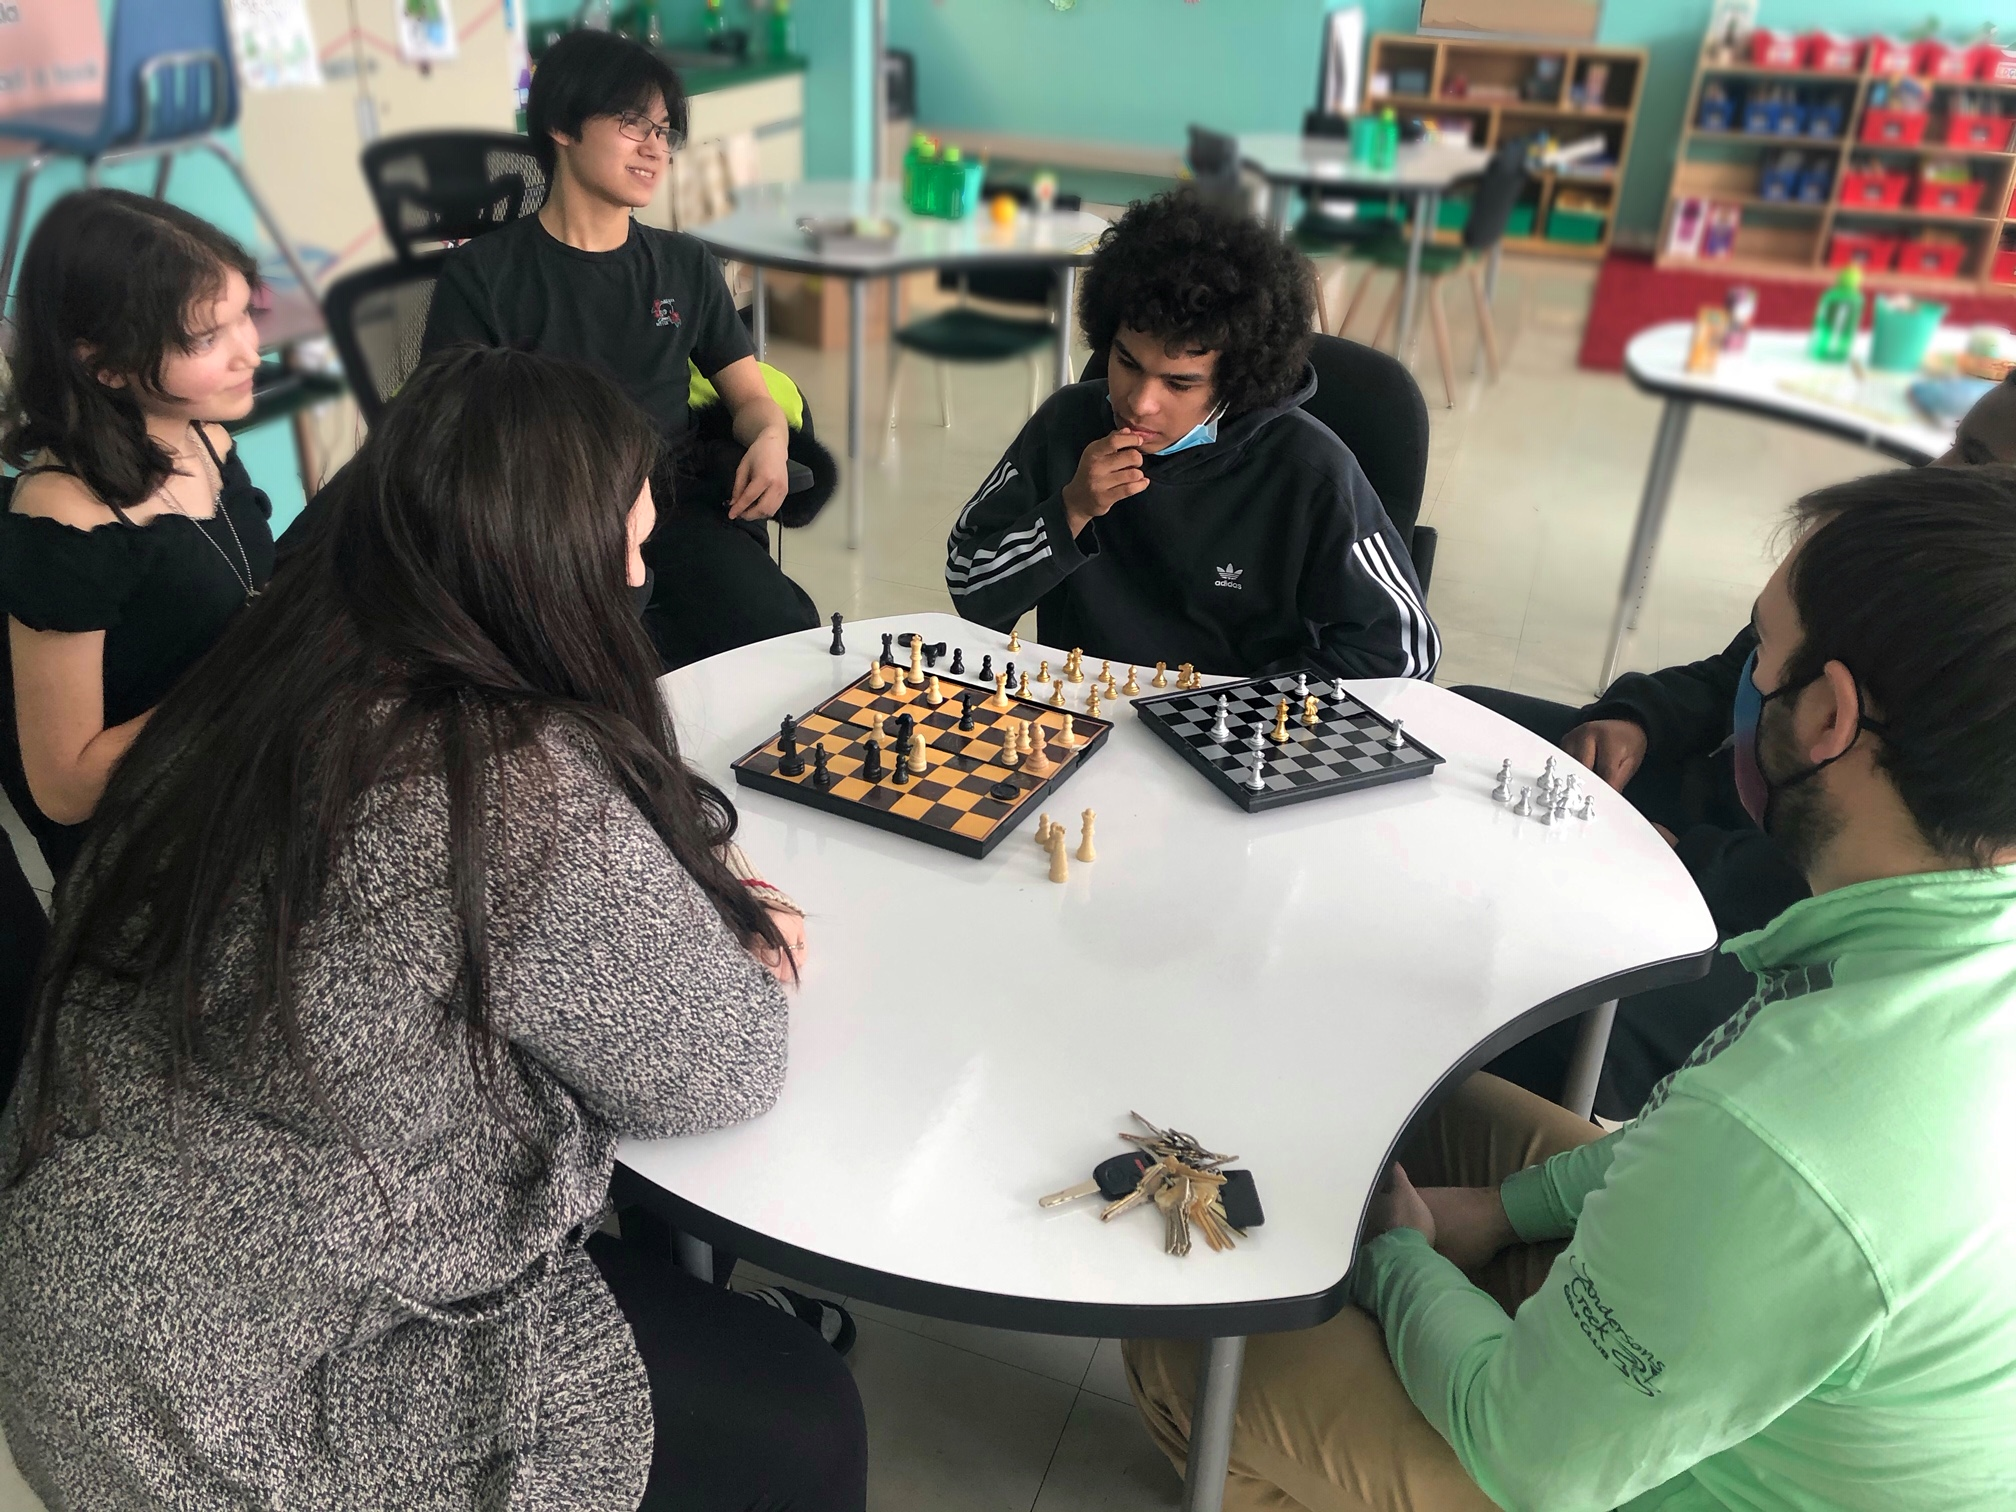 Matthew Hubloo, a Secondary 2 student at Jaanimmarik School here in Kuujjuaq, plays two chess matches simultaneously against the school's vice-principal, Nicholas Ramsay, and Grade 4 English teacher, Sarah Nickerson, on Jan. 26. Hubloo won both games. (Students at the school are not required to wear masks in the classroom.) (Photo by Isabelle Dubois)